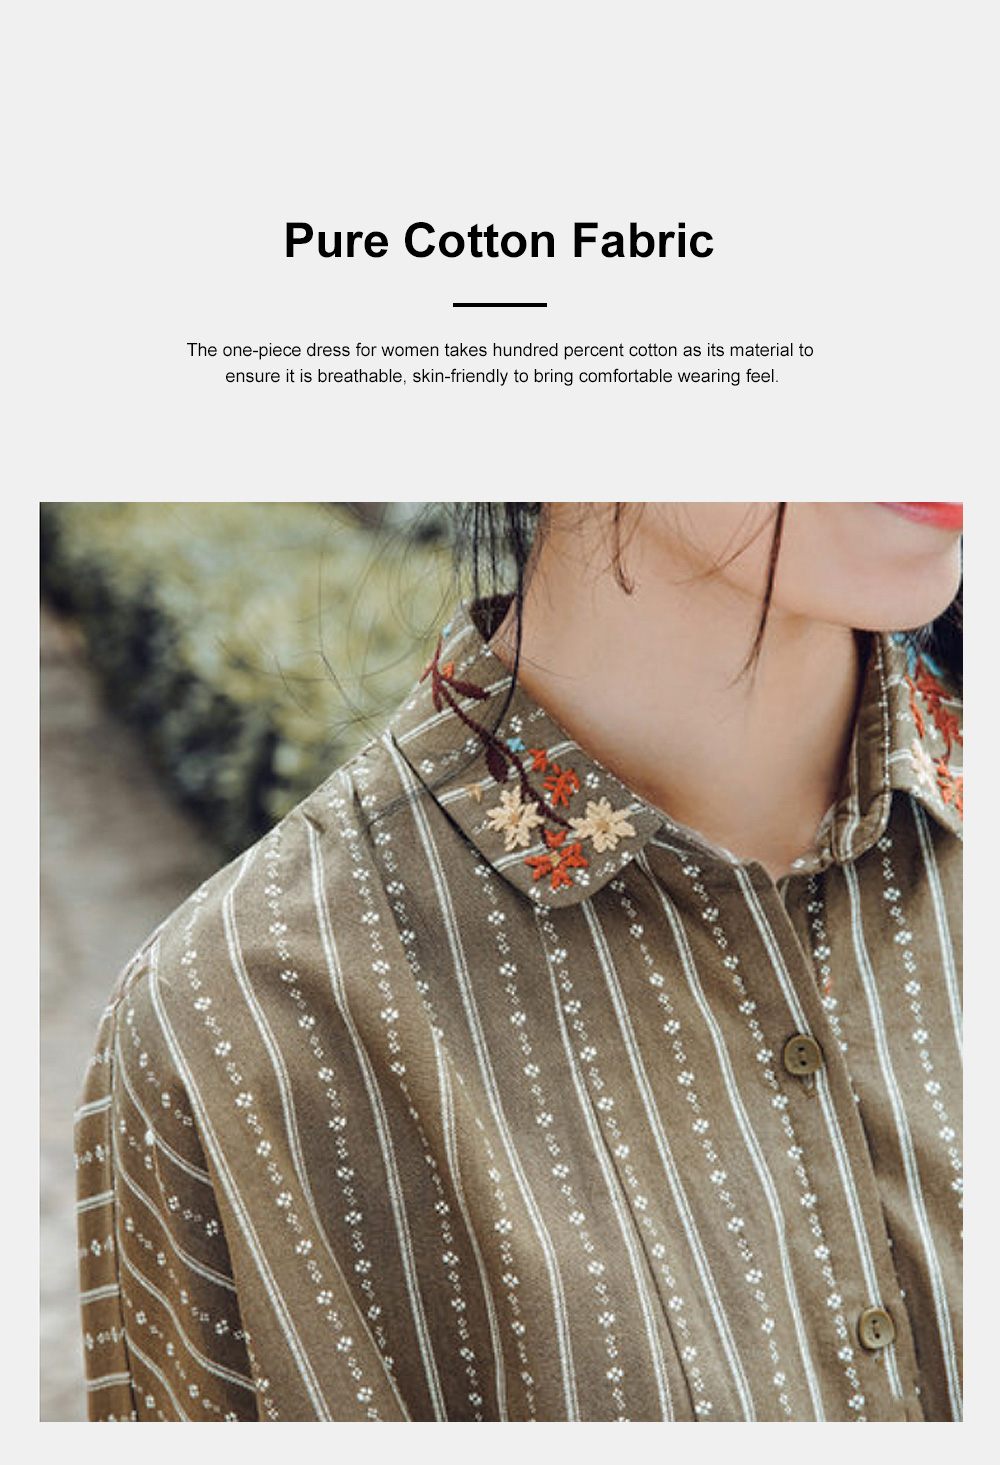 Stripe One-piece Long Dress Retro Arty Long Dust Coat for Women Pure Cotton Loose One-piece Dress Polo Collar Dress 5